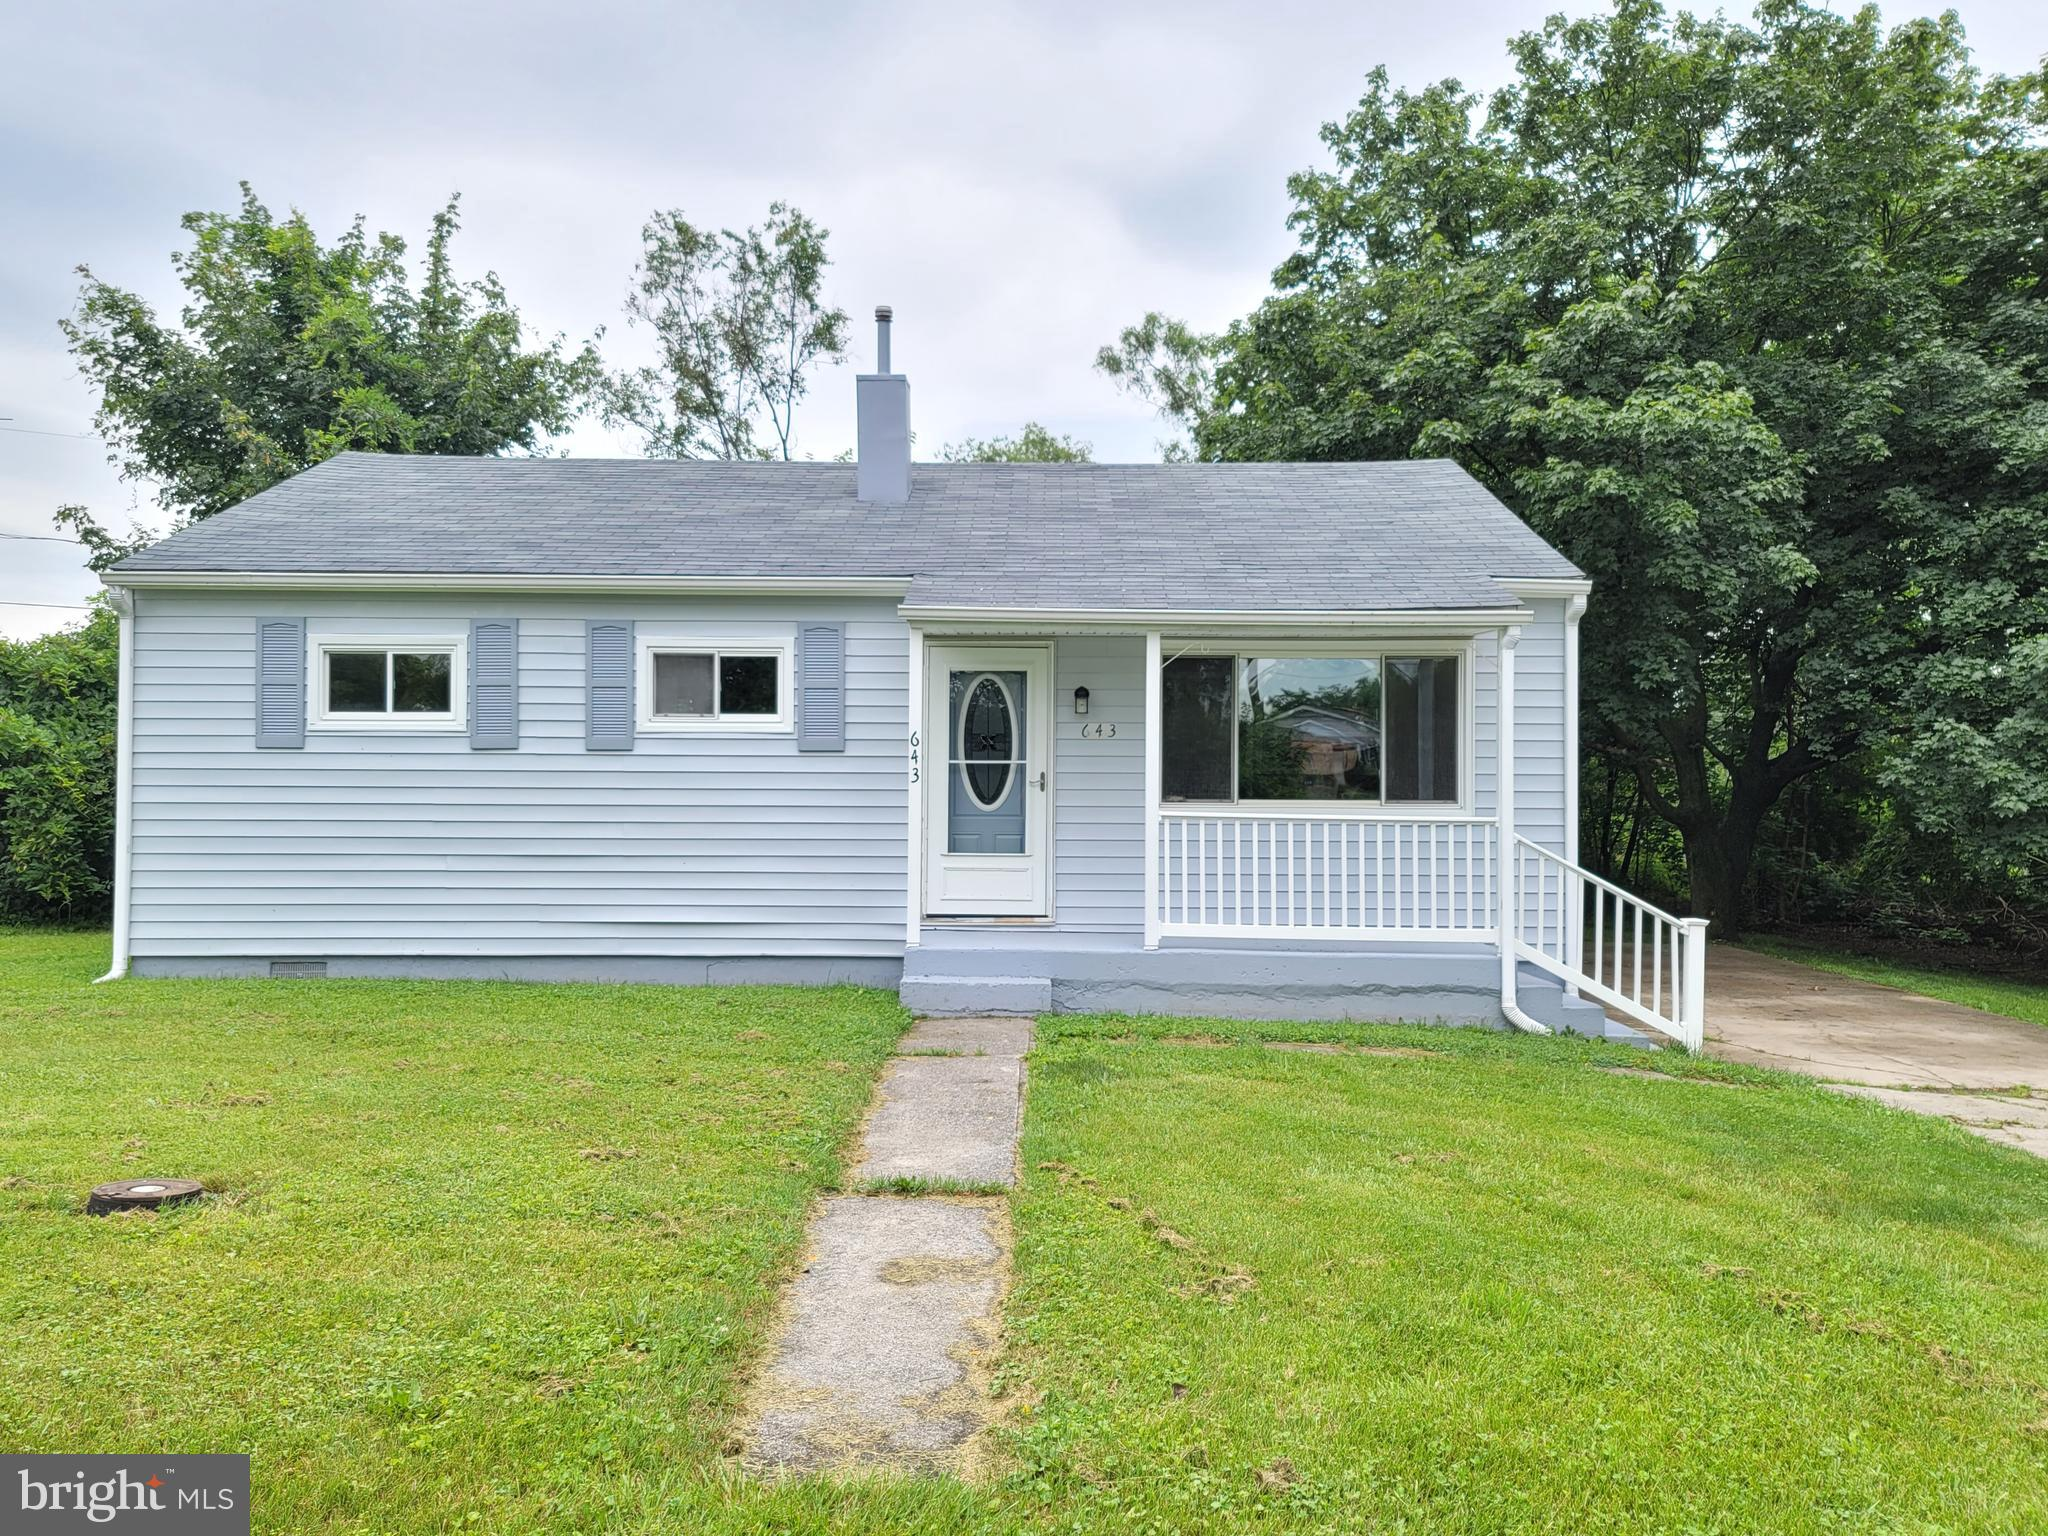 Looking to downsize or looking for a nice starter home?  Check out this affordable rancher.  Offerin